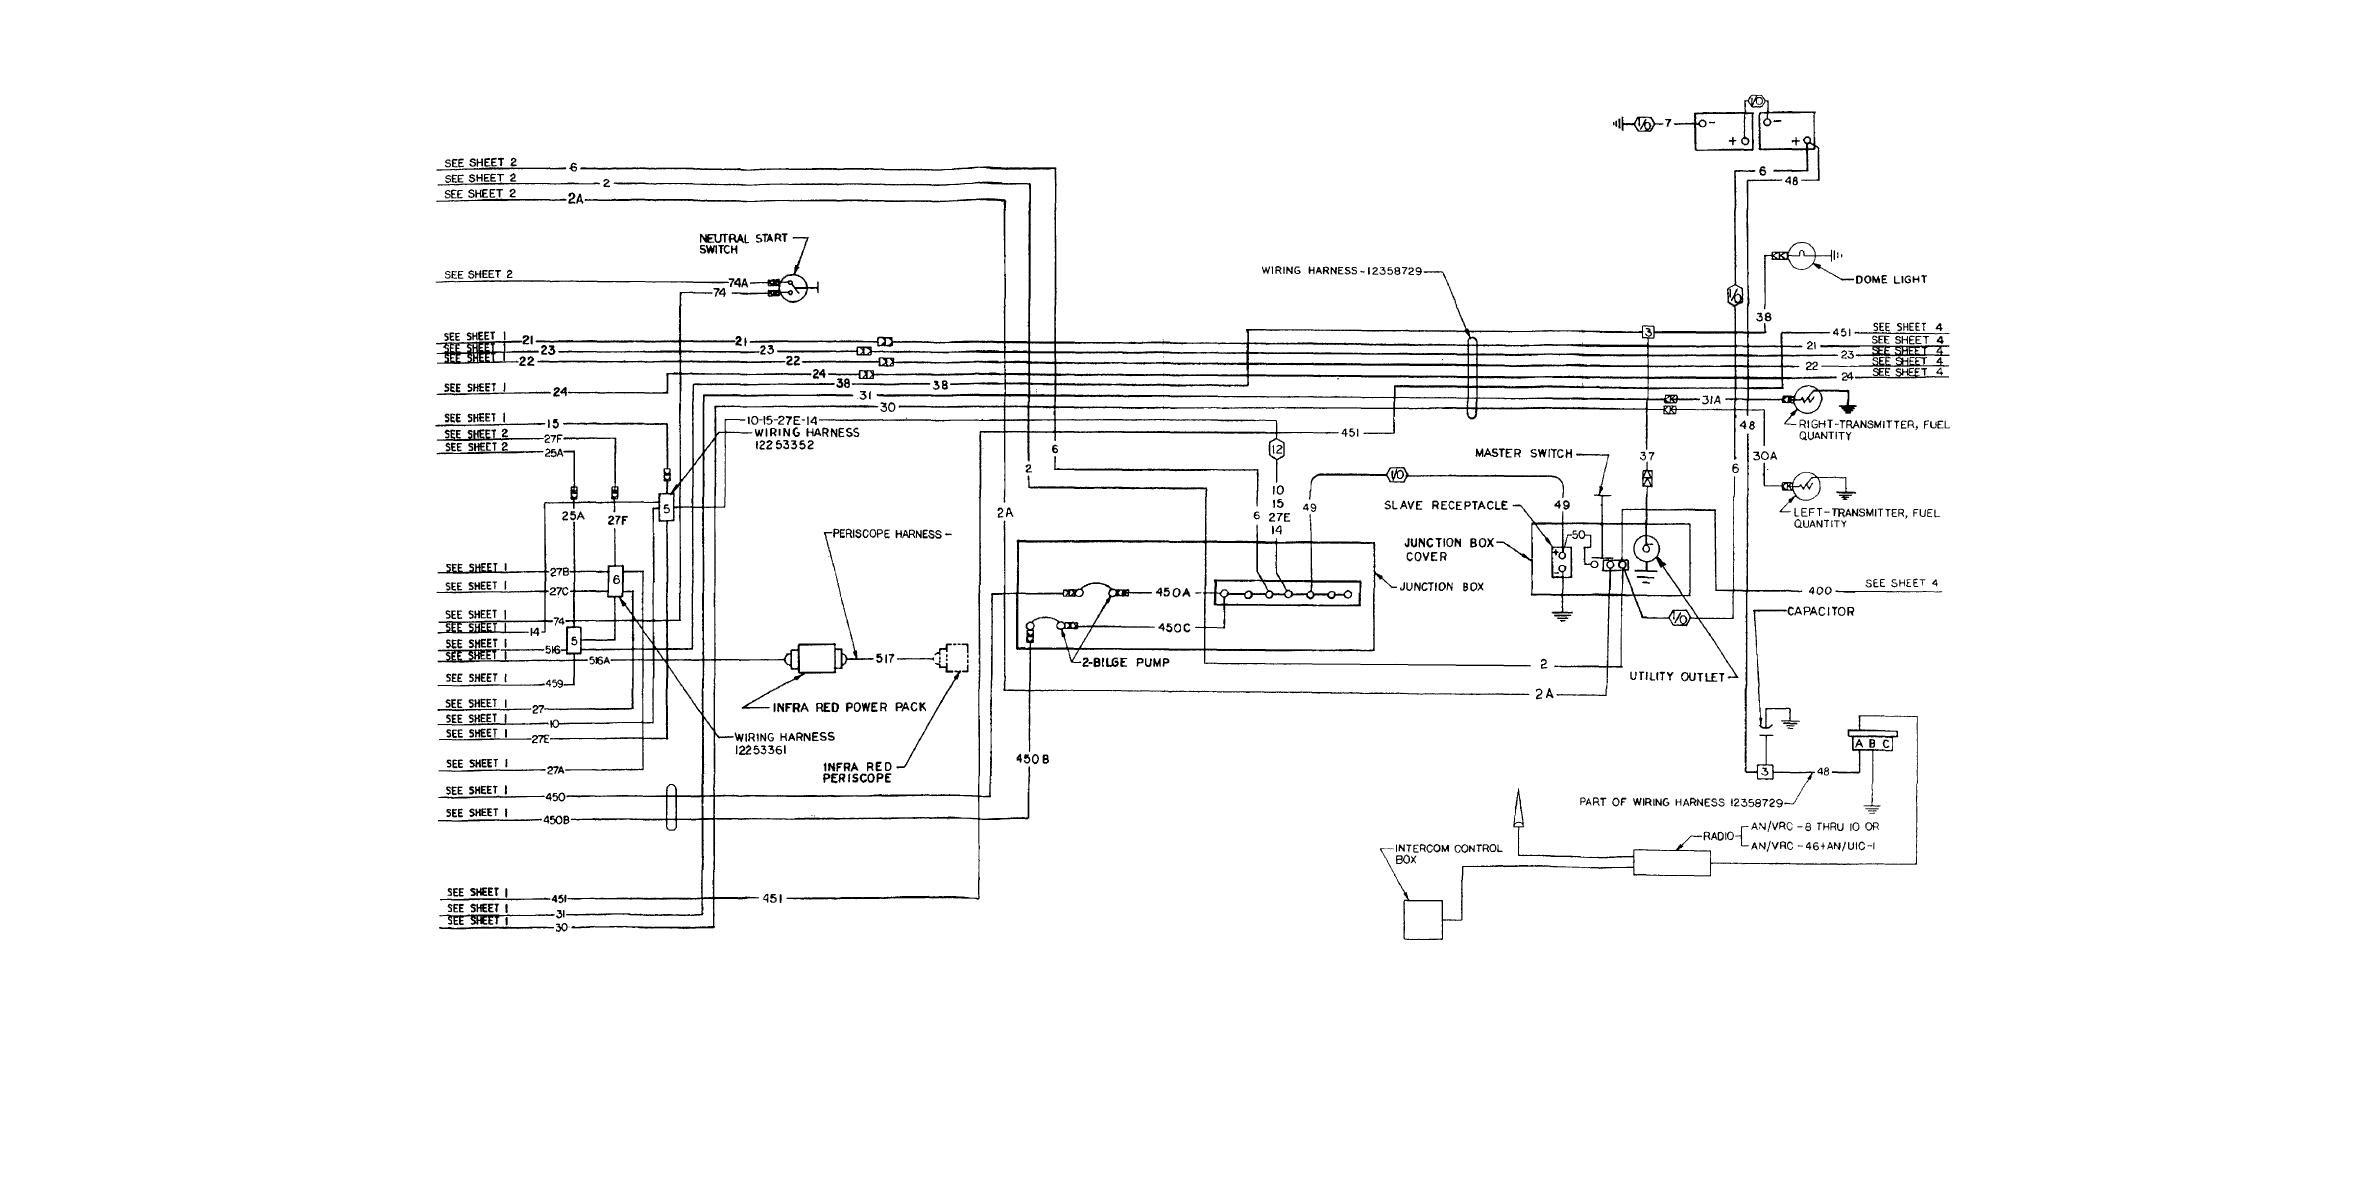 Meter Socket Wiring Diagram from lh3.googleusercontent.com